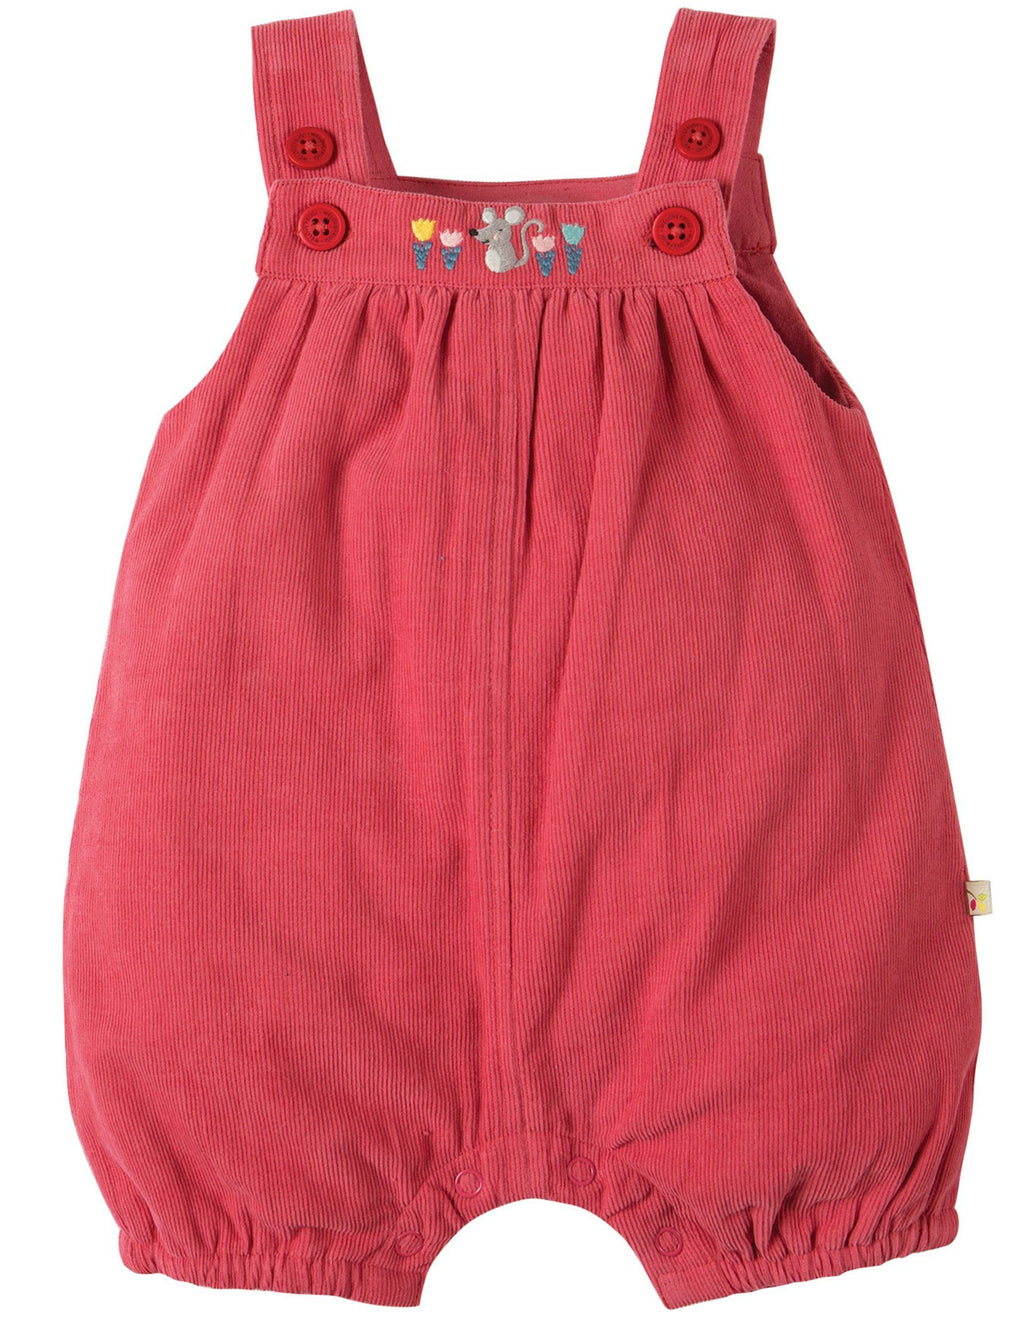 Dinky cord dungarees - vintage rose